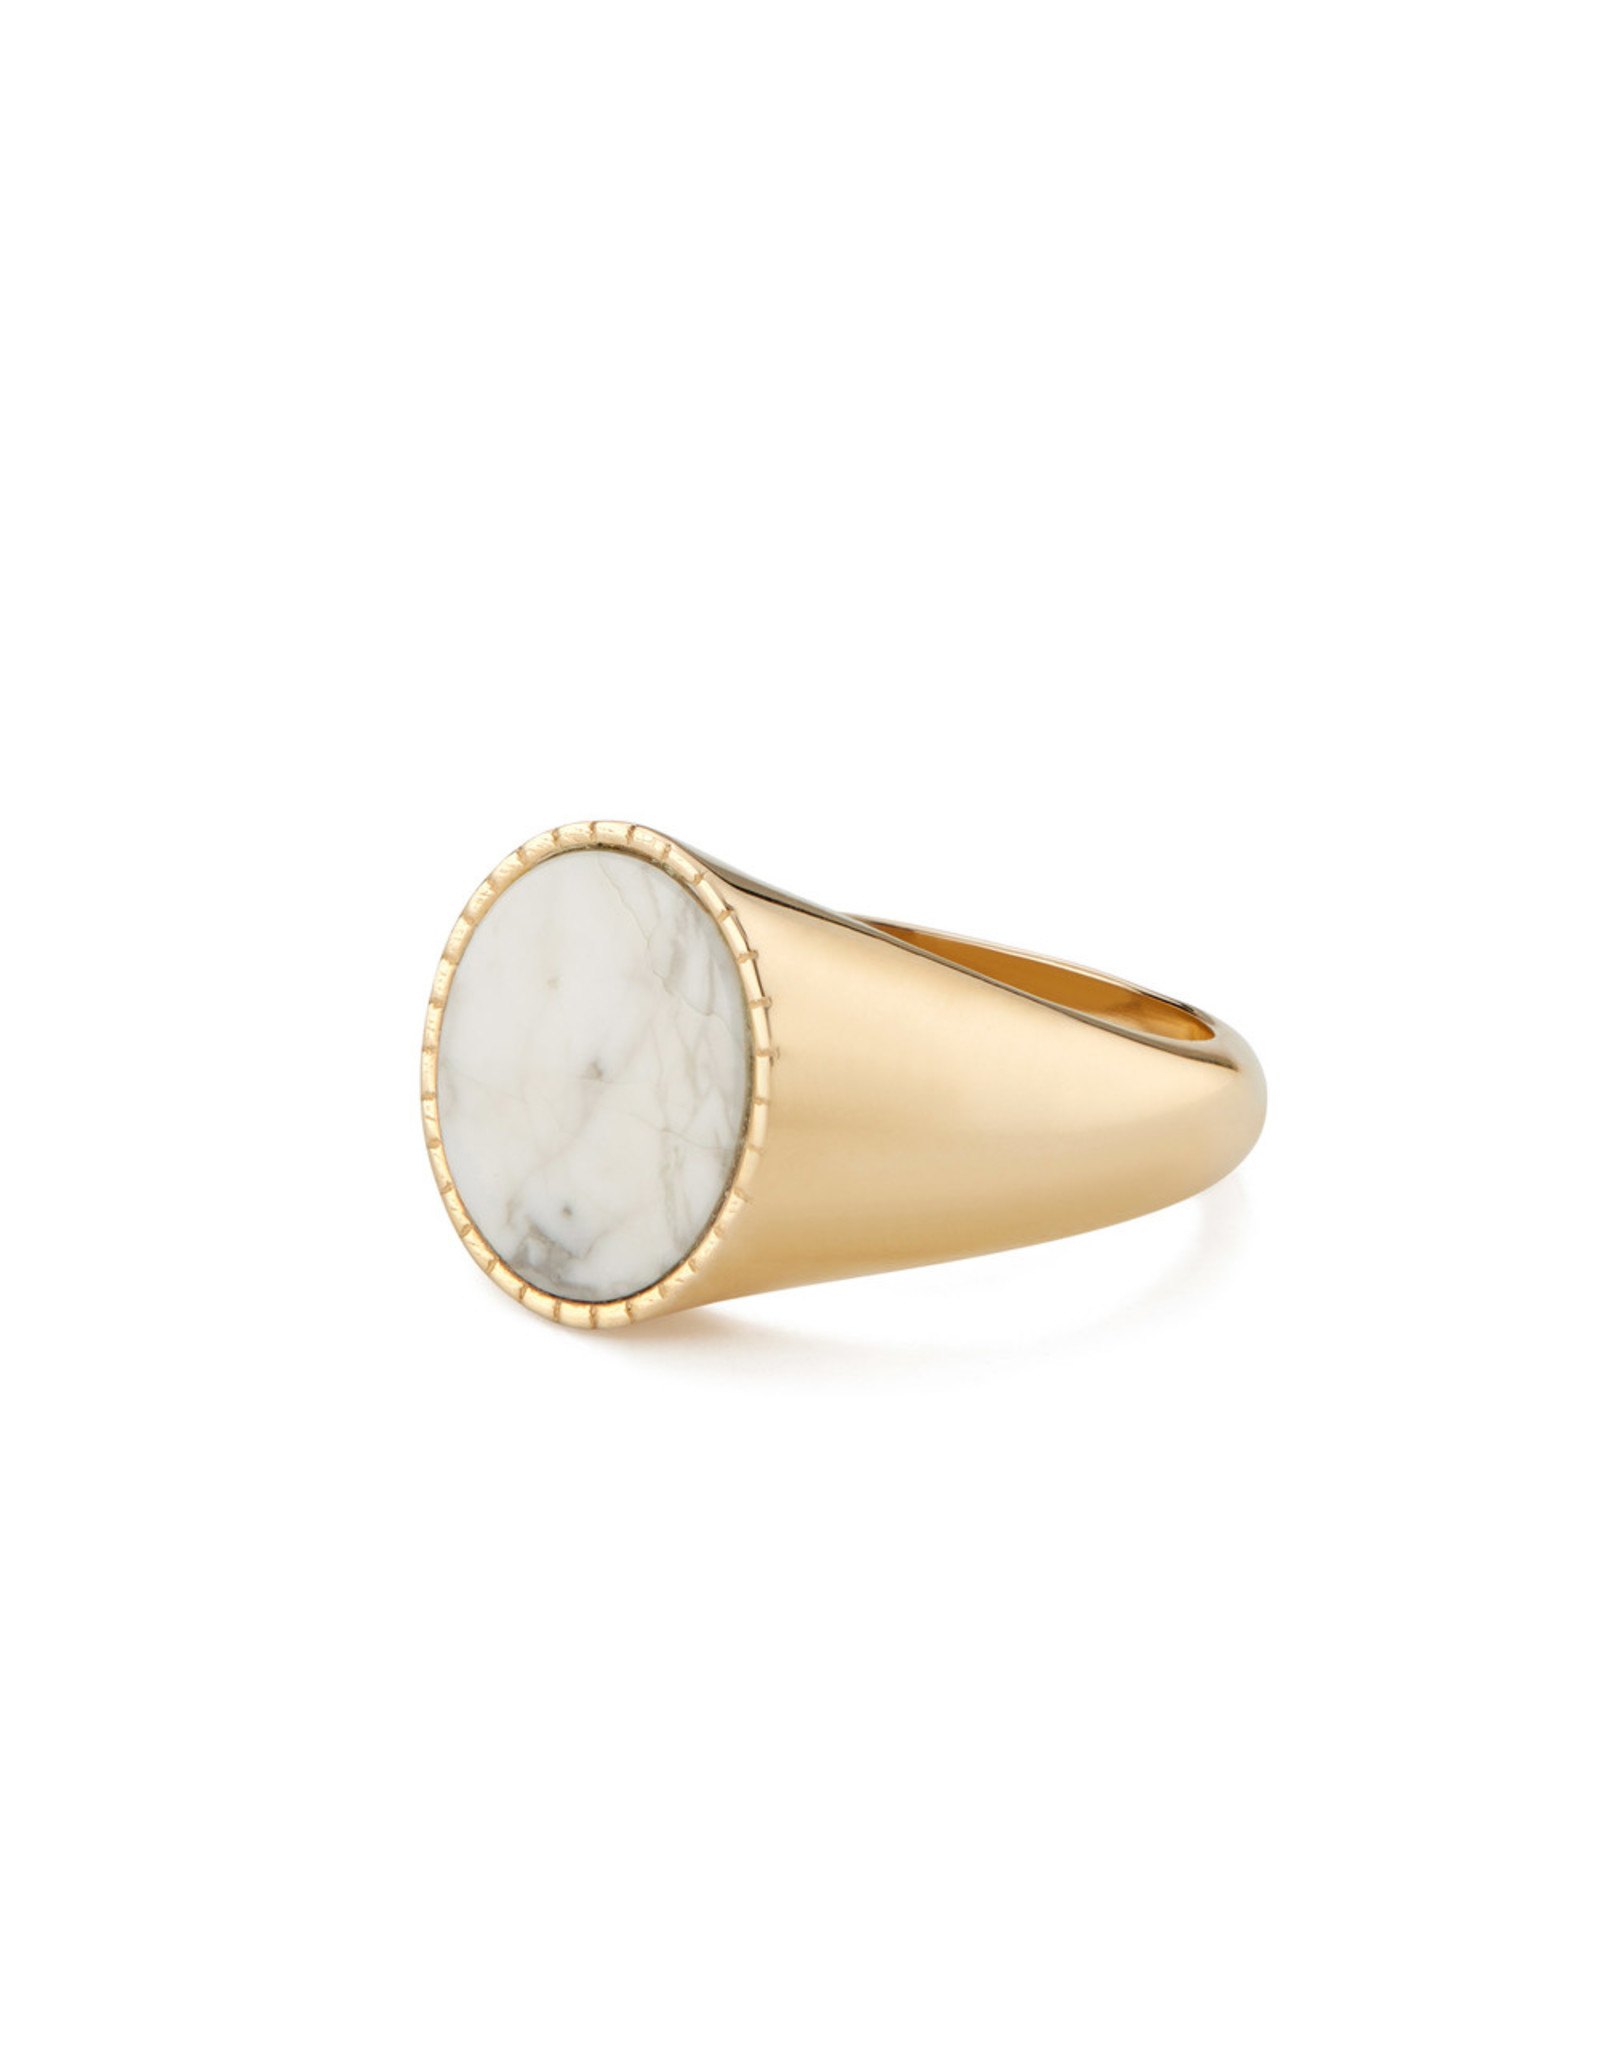 Bondeye Jewelry Bondeye Markle 14K Yellow-Gold Howlite Ring (Color: Yellow Gold / Howlite, Size: 6)